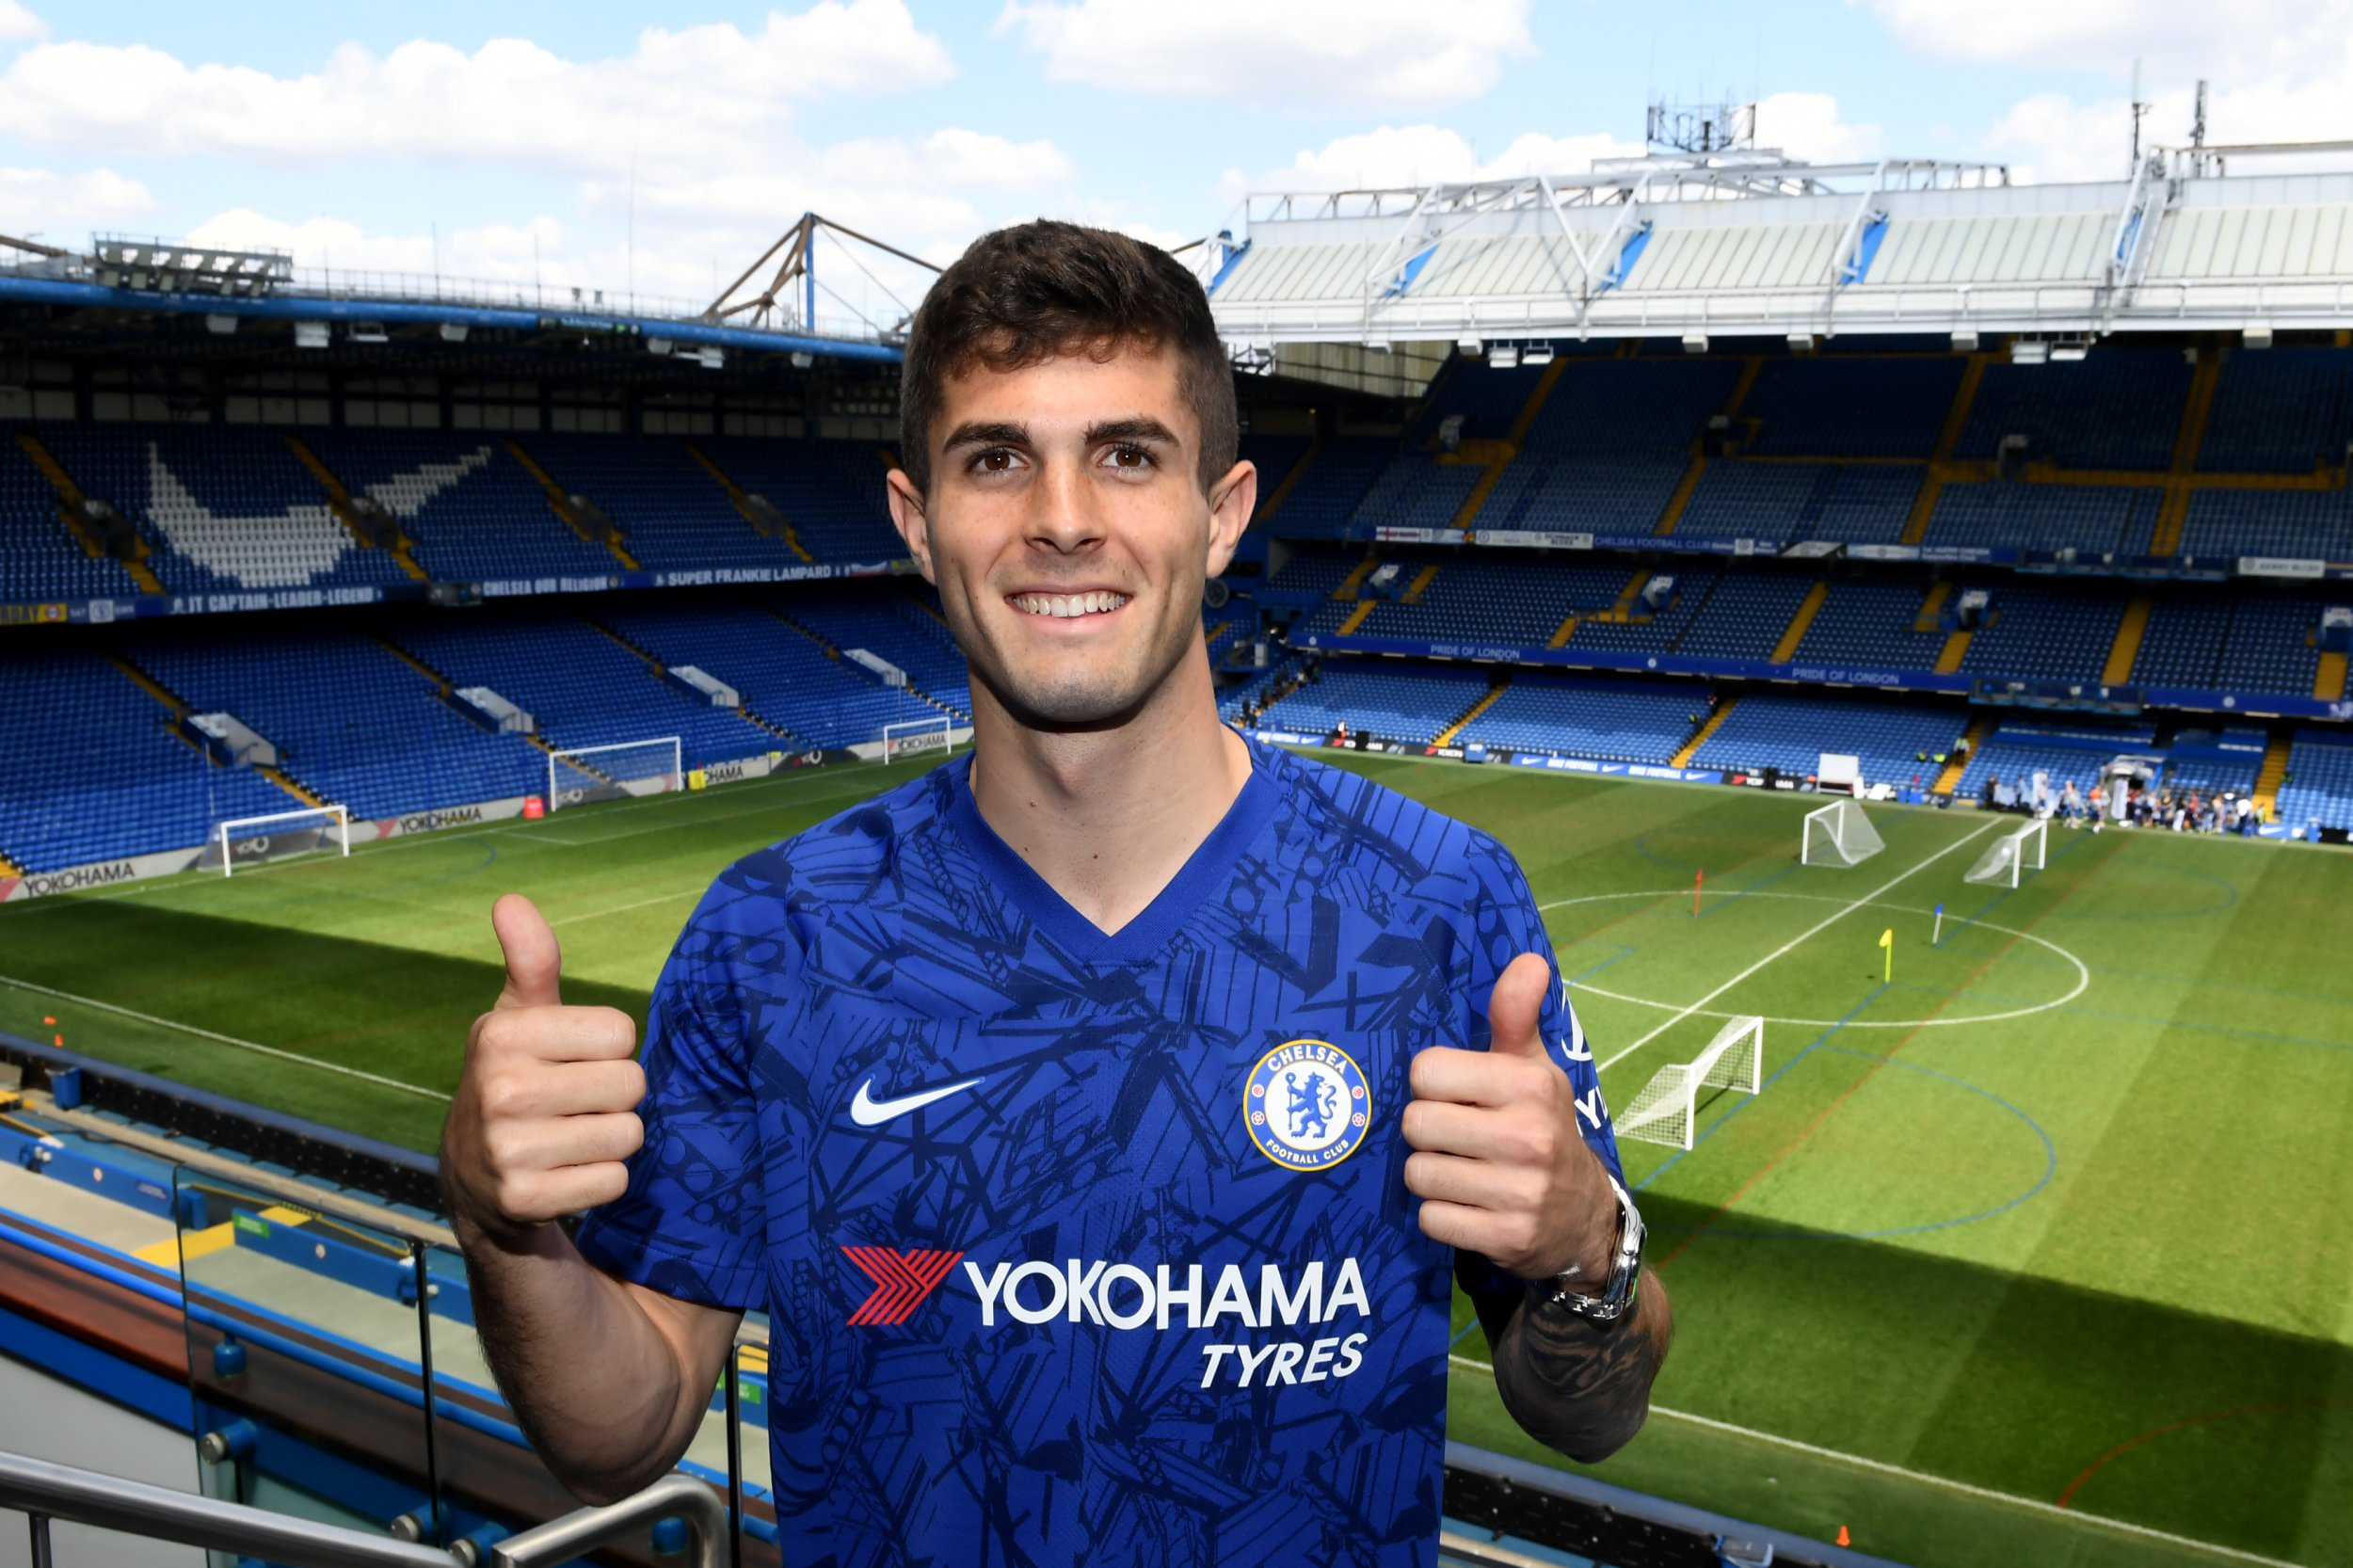 New Chelsea signing Christian Pulisic spoke to Arsenal star Pierre-Emerick Aubameyang before Stamford Bridge move